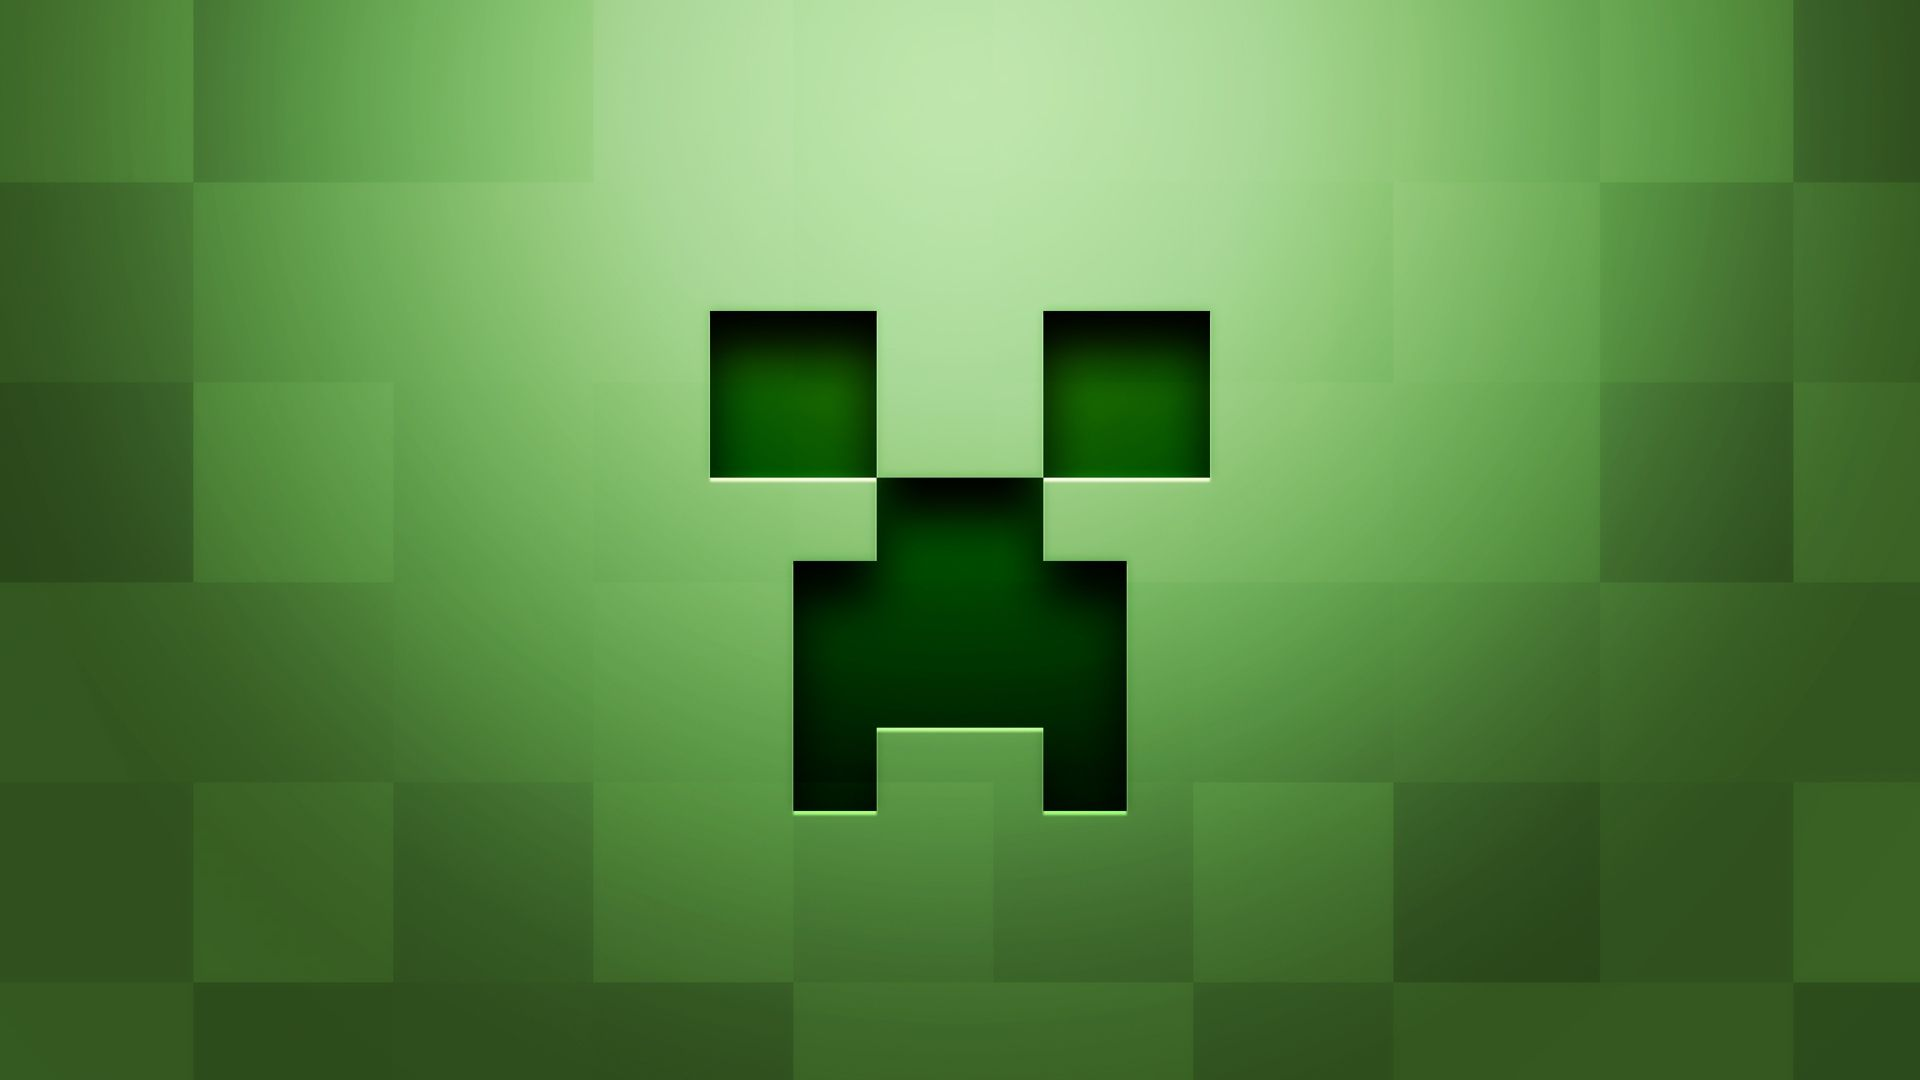 Beautiful Minecraft Background Graphics Green Wallpaper « Kuff Games